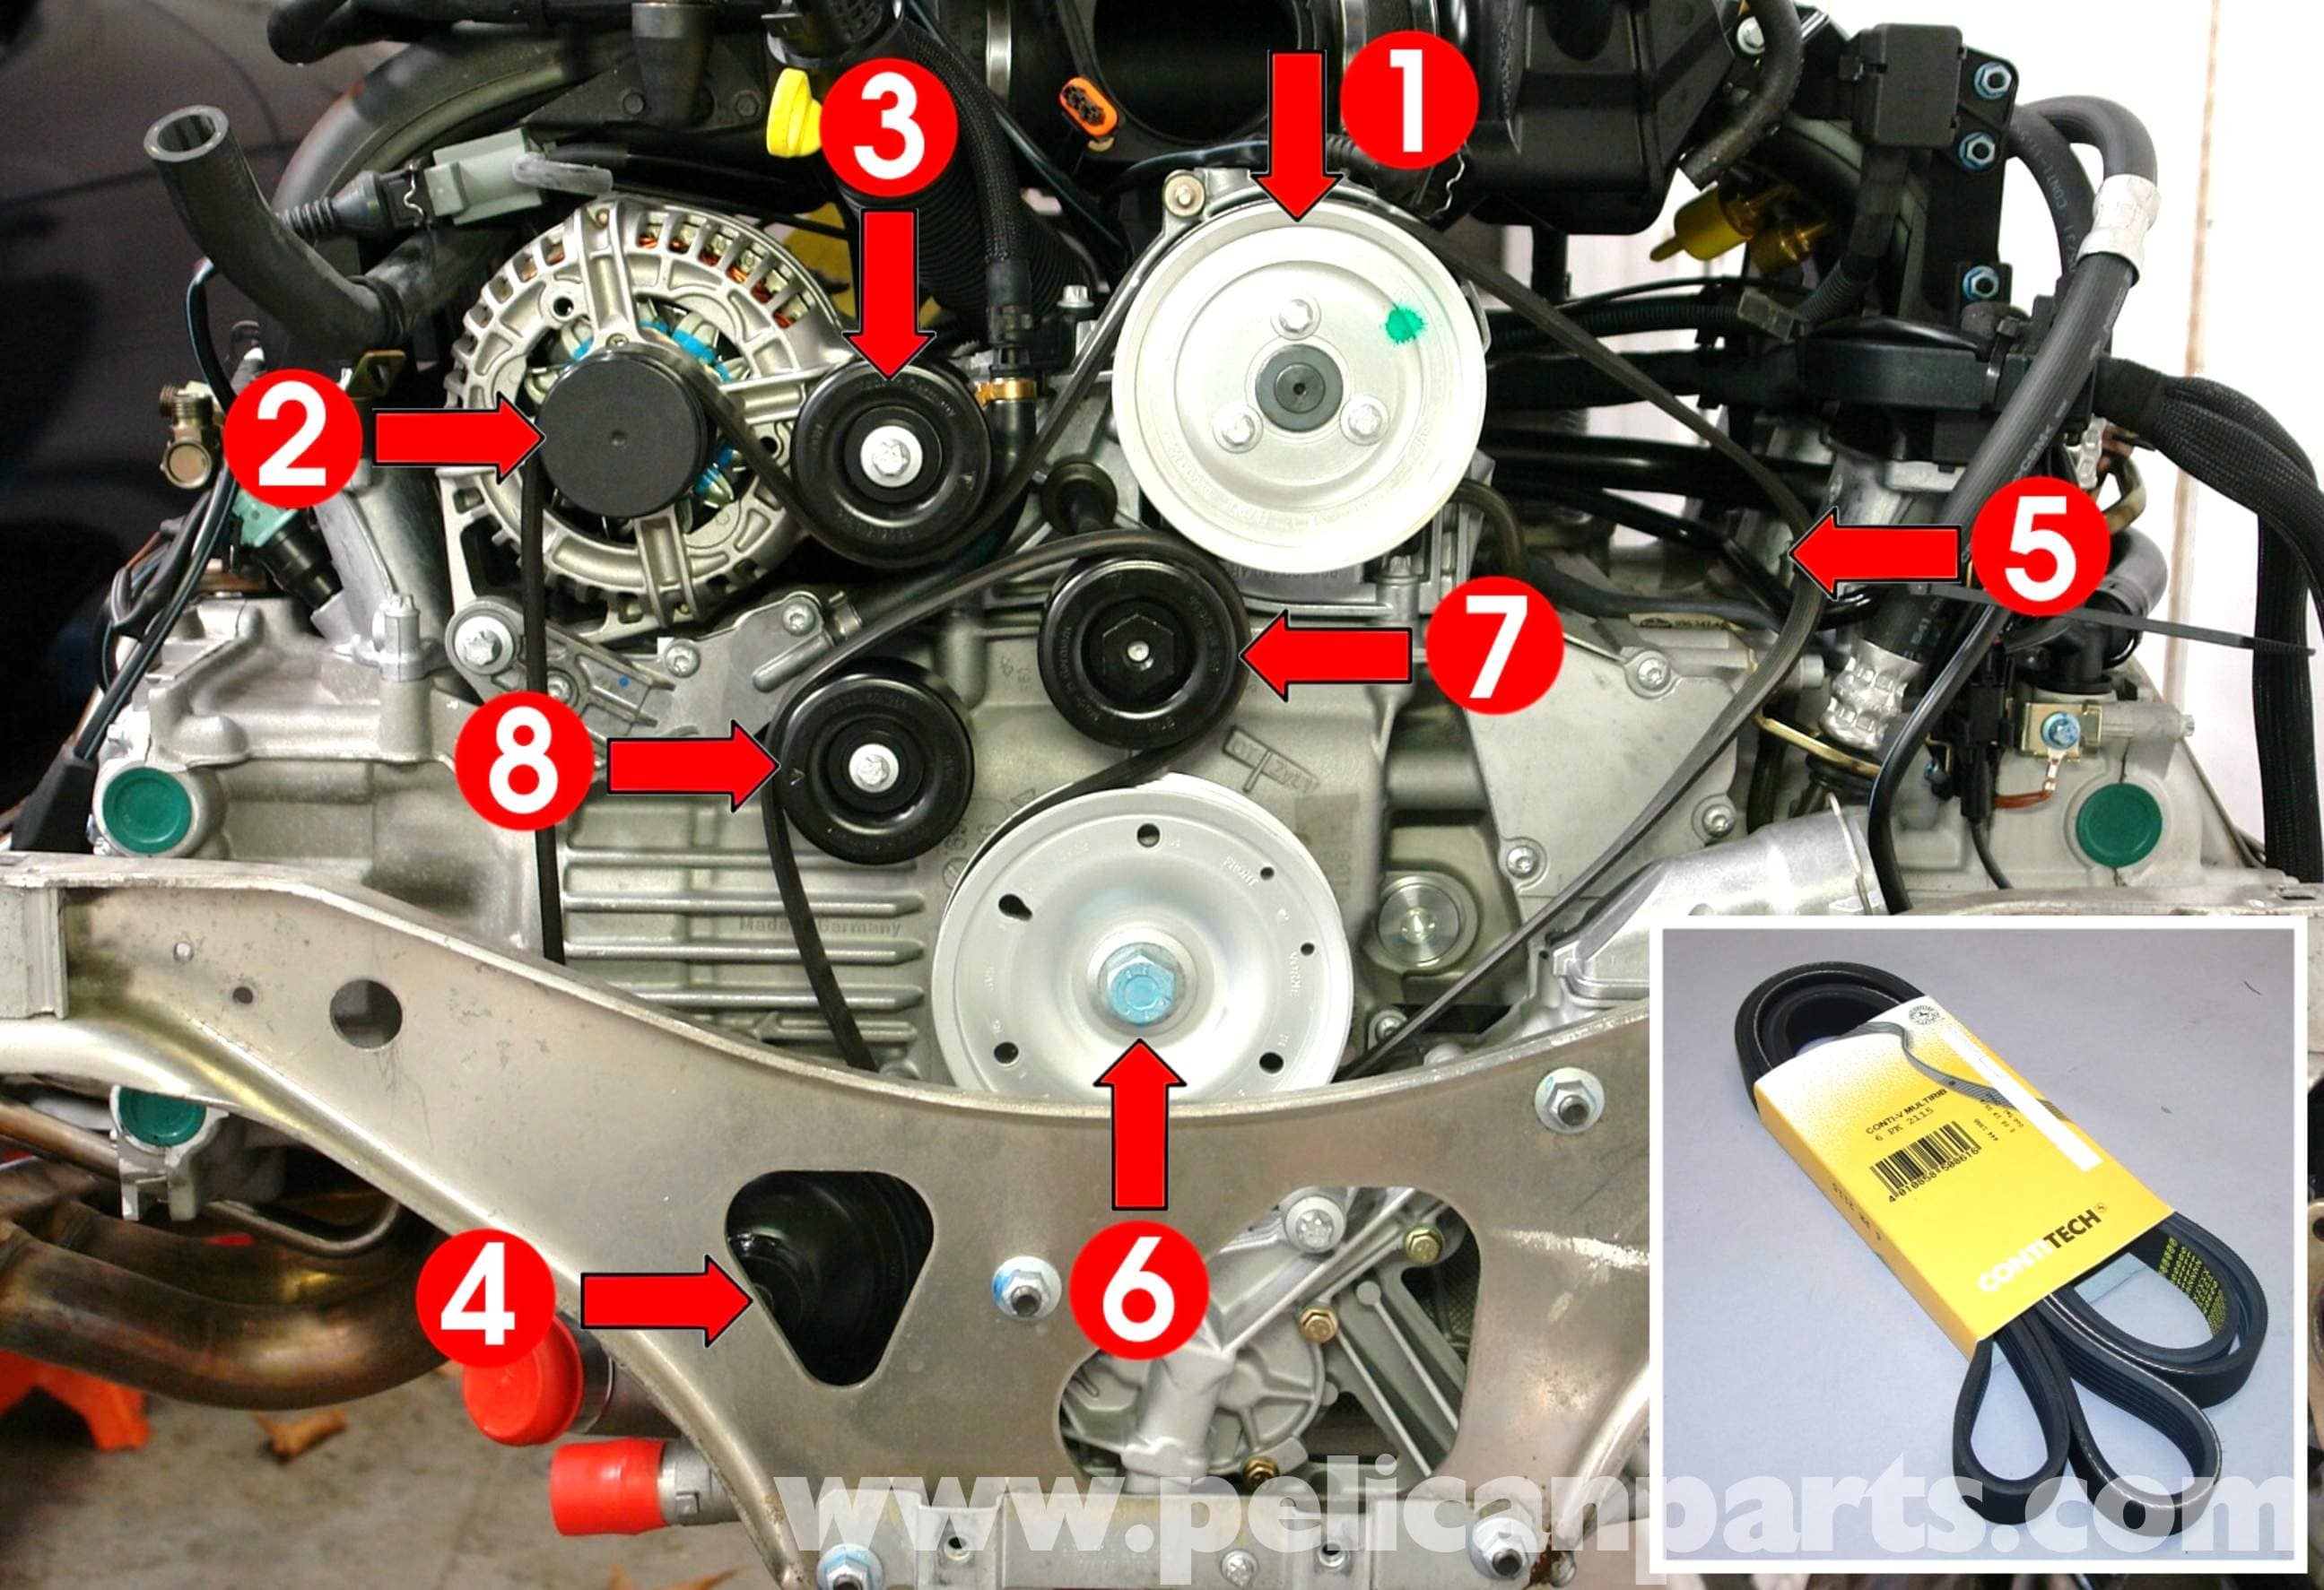 Porsche 911 Timing Belt Diagram Start Building A Wiring 1986 Flat 6 Engine Carrera Replacement 996 1998 2005 997 Rh Pelicanparts Com Radiator 2017 Frame